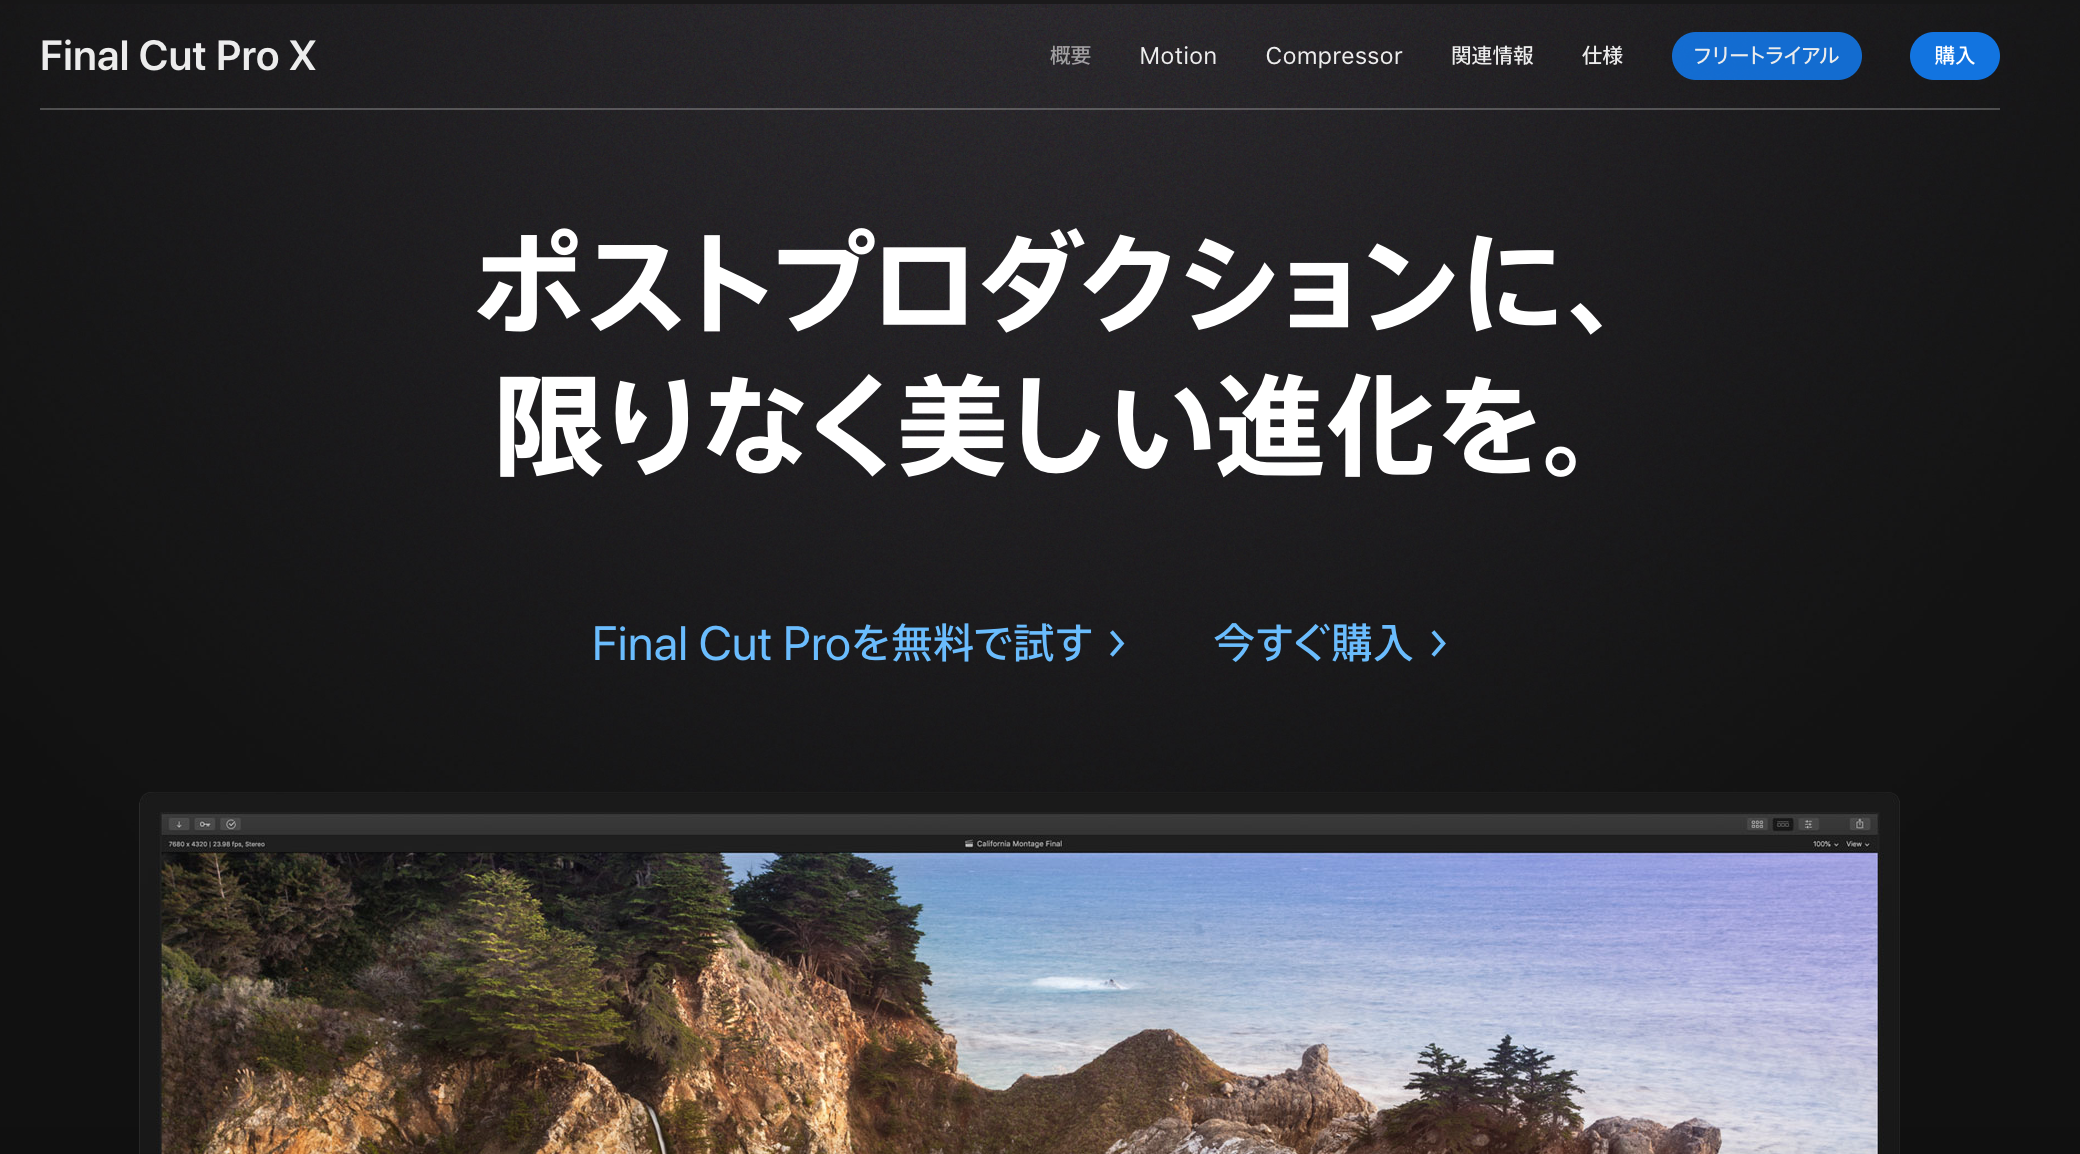 【PC】YouTuber向け動画編集ソフト「FinalCut Pro」